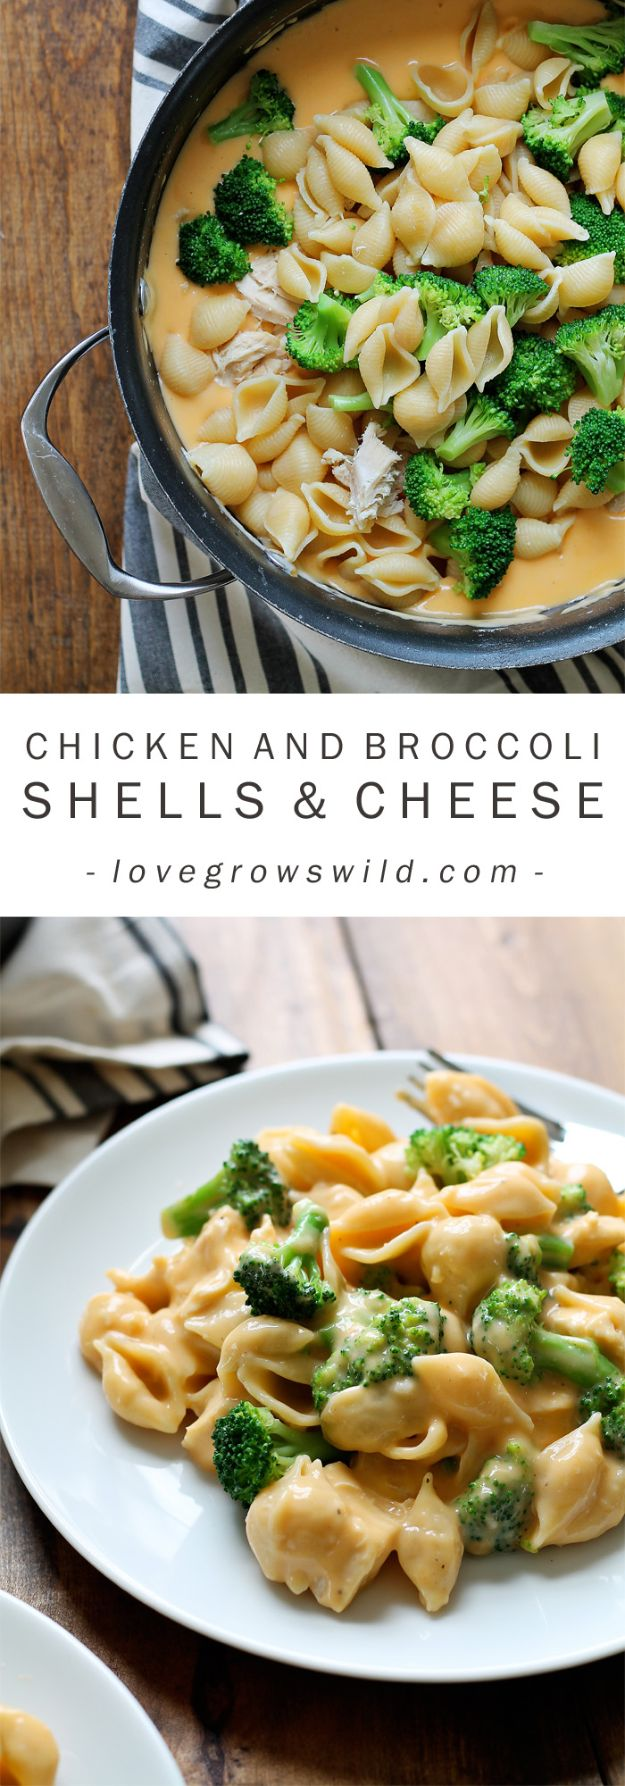 Easy Dinner Recipes for Kids and Family - Chicken and Broccoli Shells and Cheese - Quick and Simple Dinner Recipe Ideas for Weeknight and Last Minute Supper - Chicken, Ground Beef, Fish, Pasta, Healthy Salads, Low Fat and Vegetarian Dishes #easyrecipes #dinnerideas #recipes